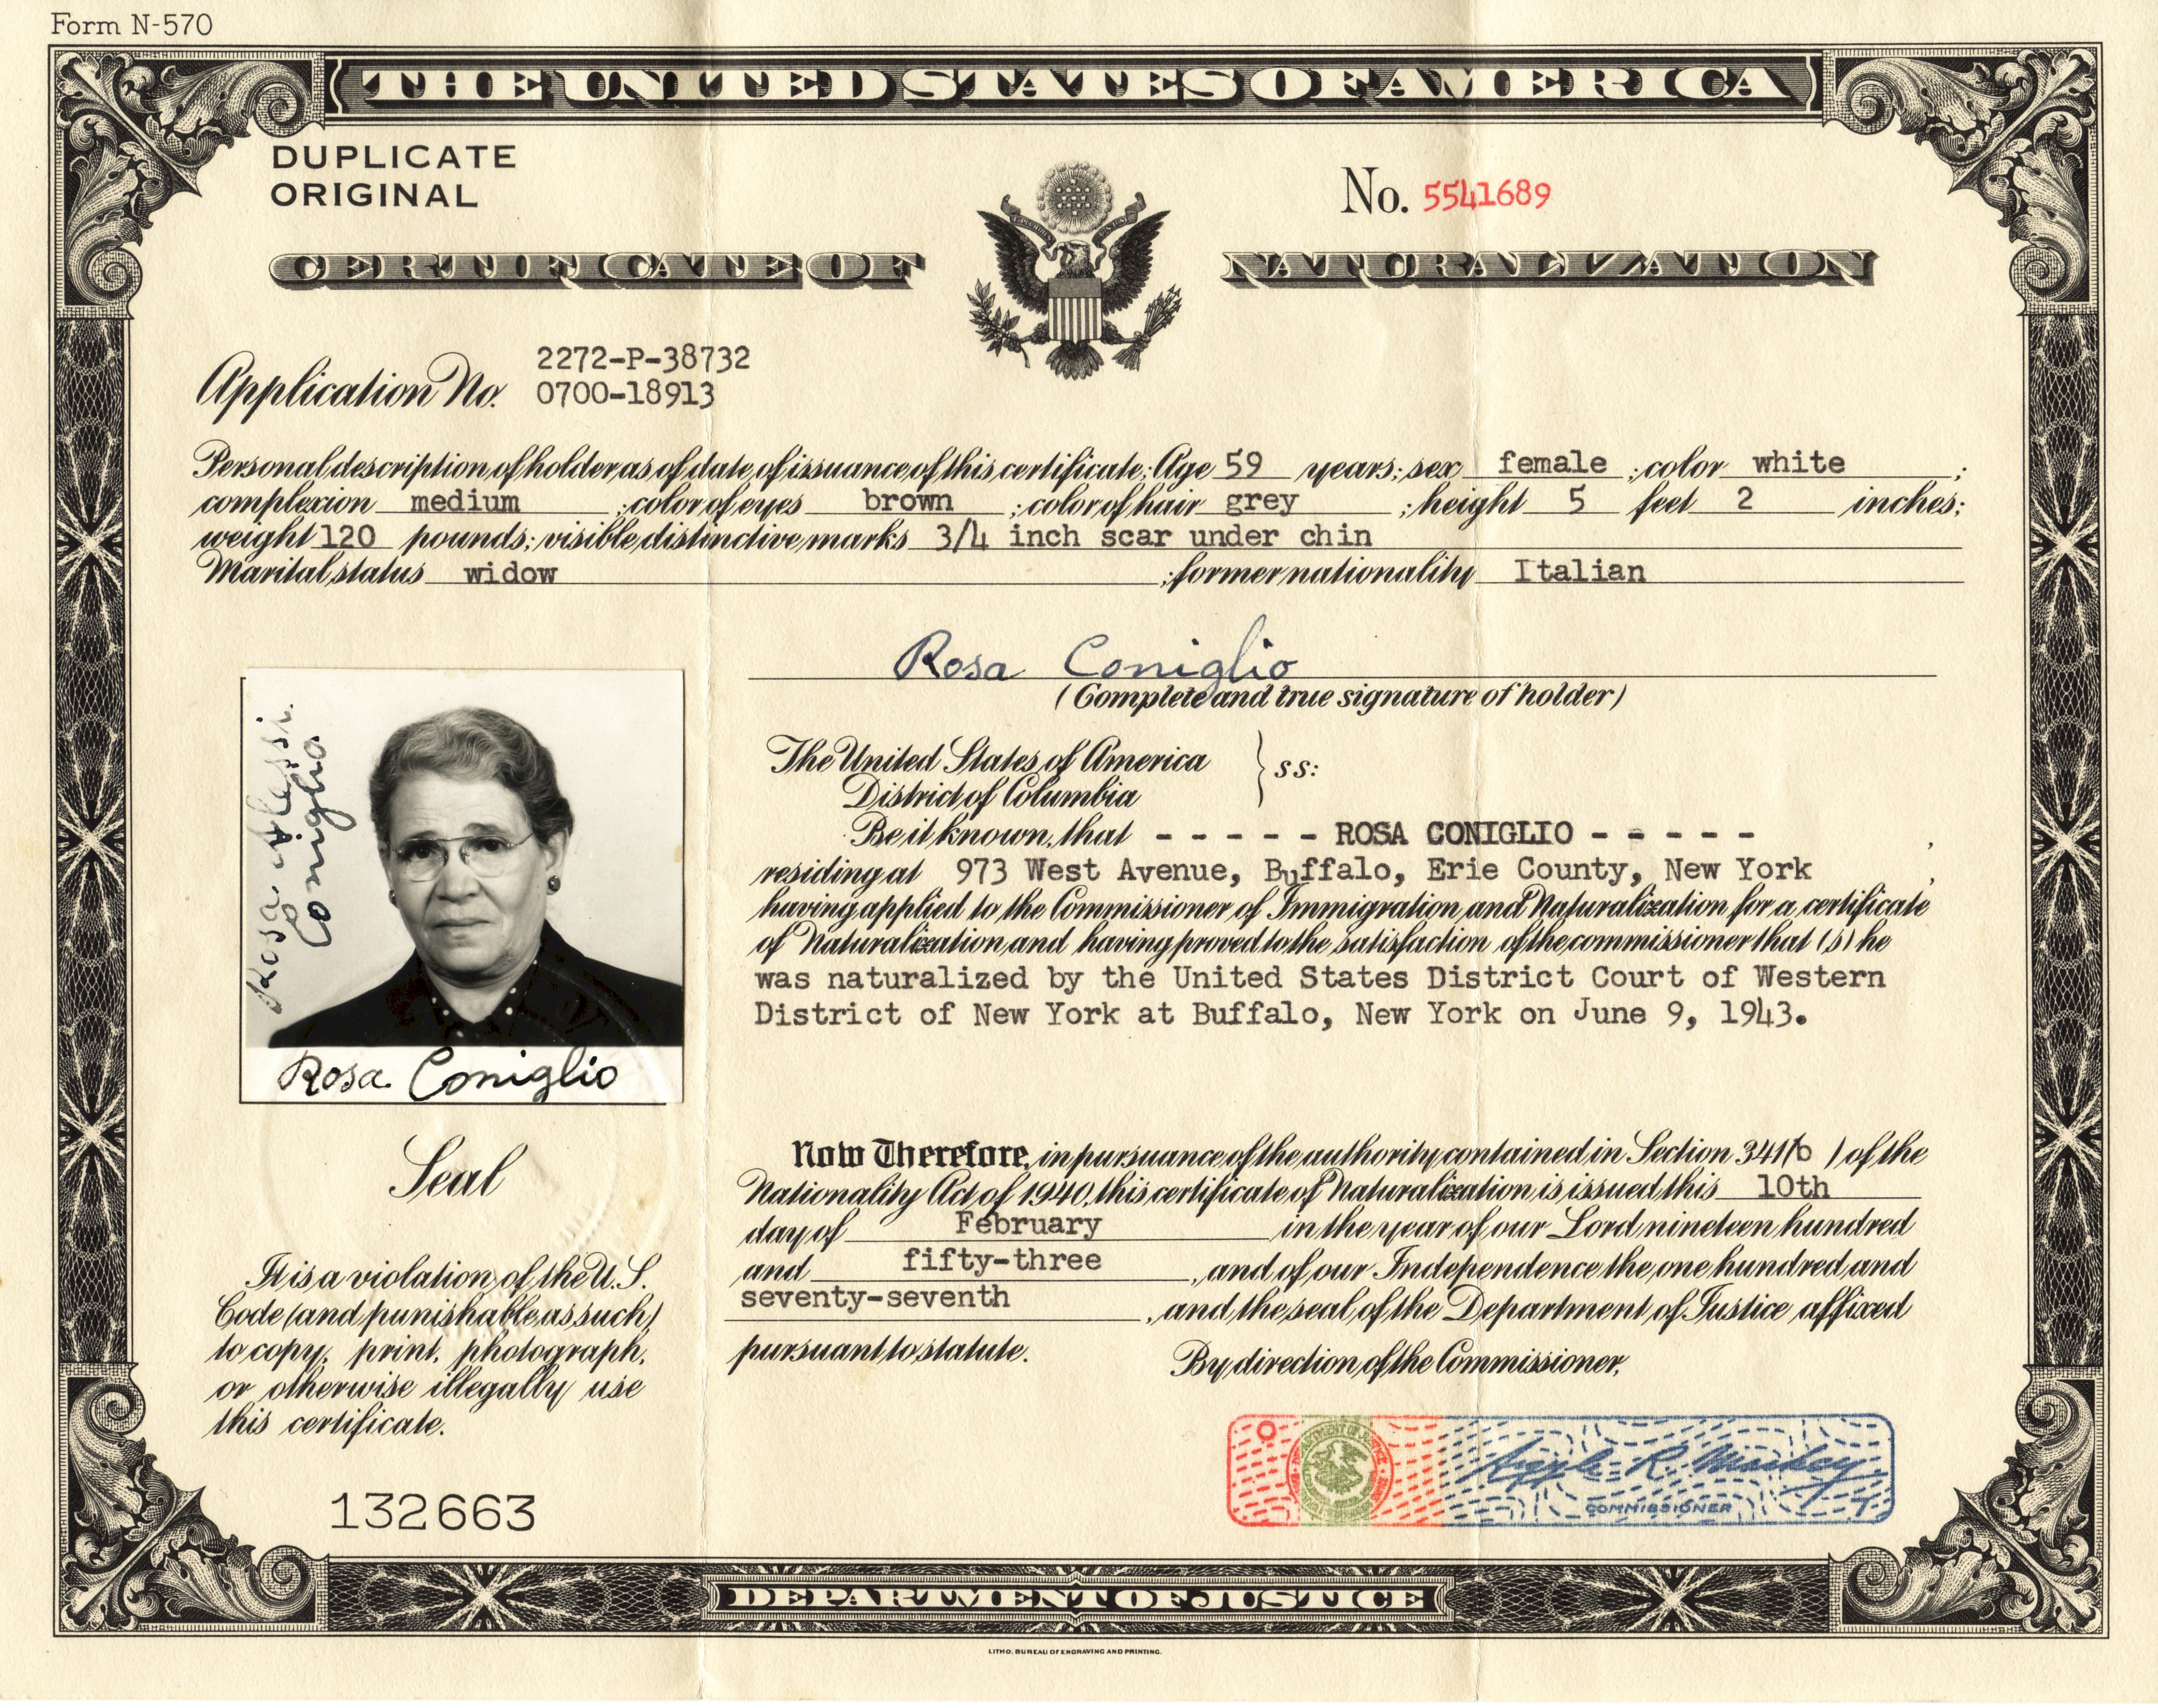 Best of photograph of naturalization certificate business cards rosa alessi coniglio xflitez Image collections